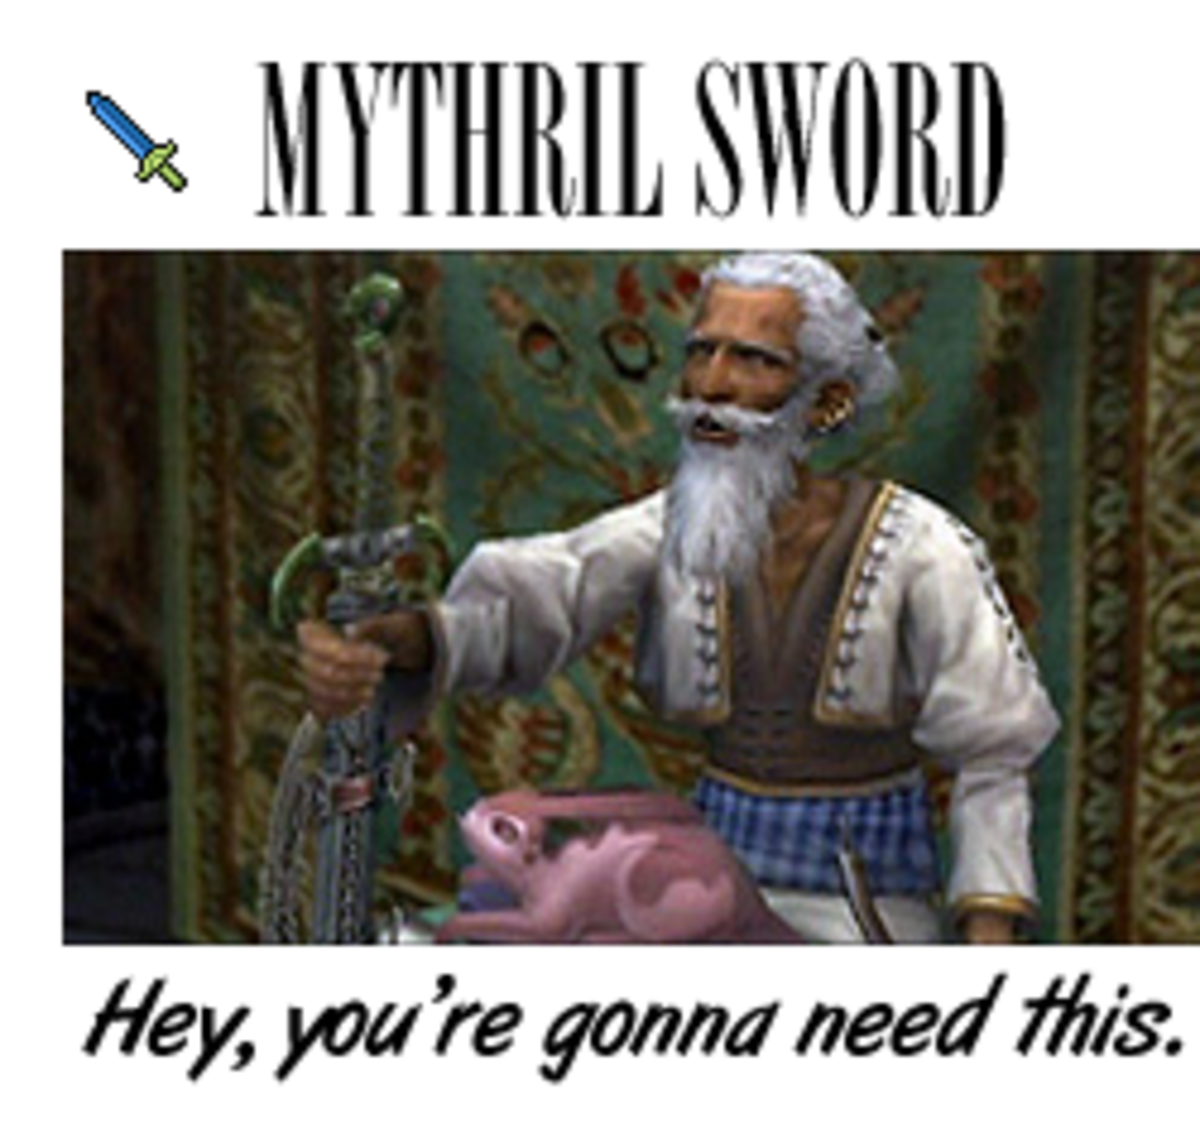 Final Fantasy Mythril Swords